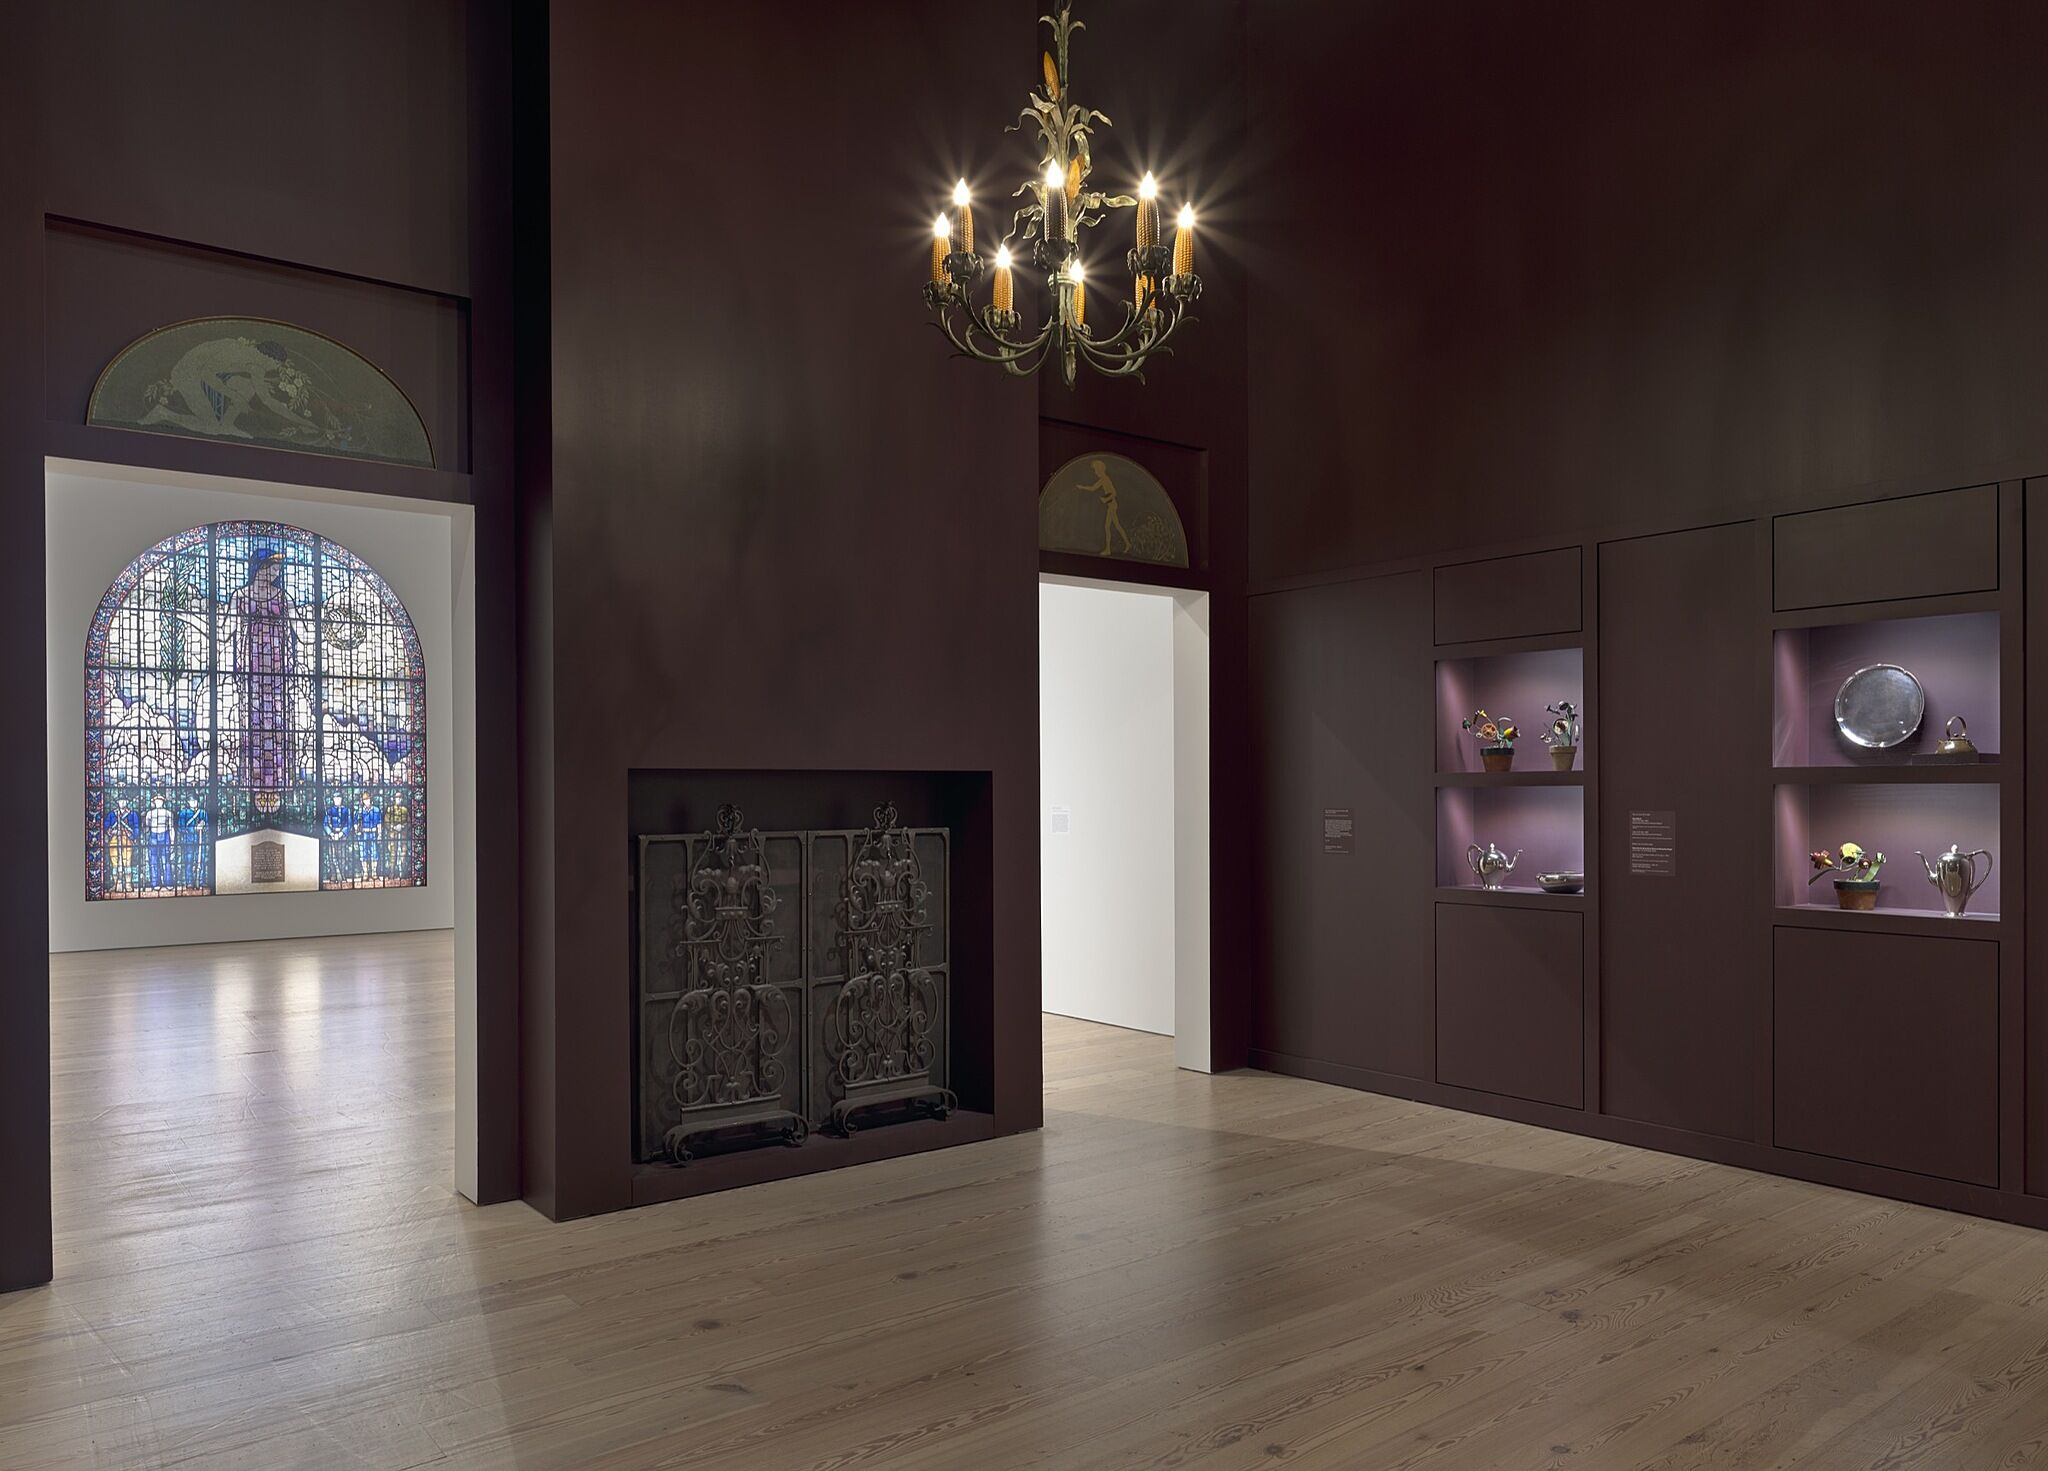 A gallery space with paintings, various dishware sets, and a stained glass window.